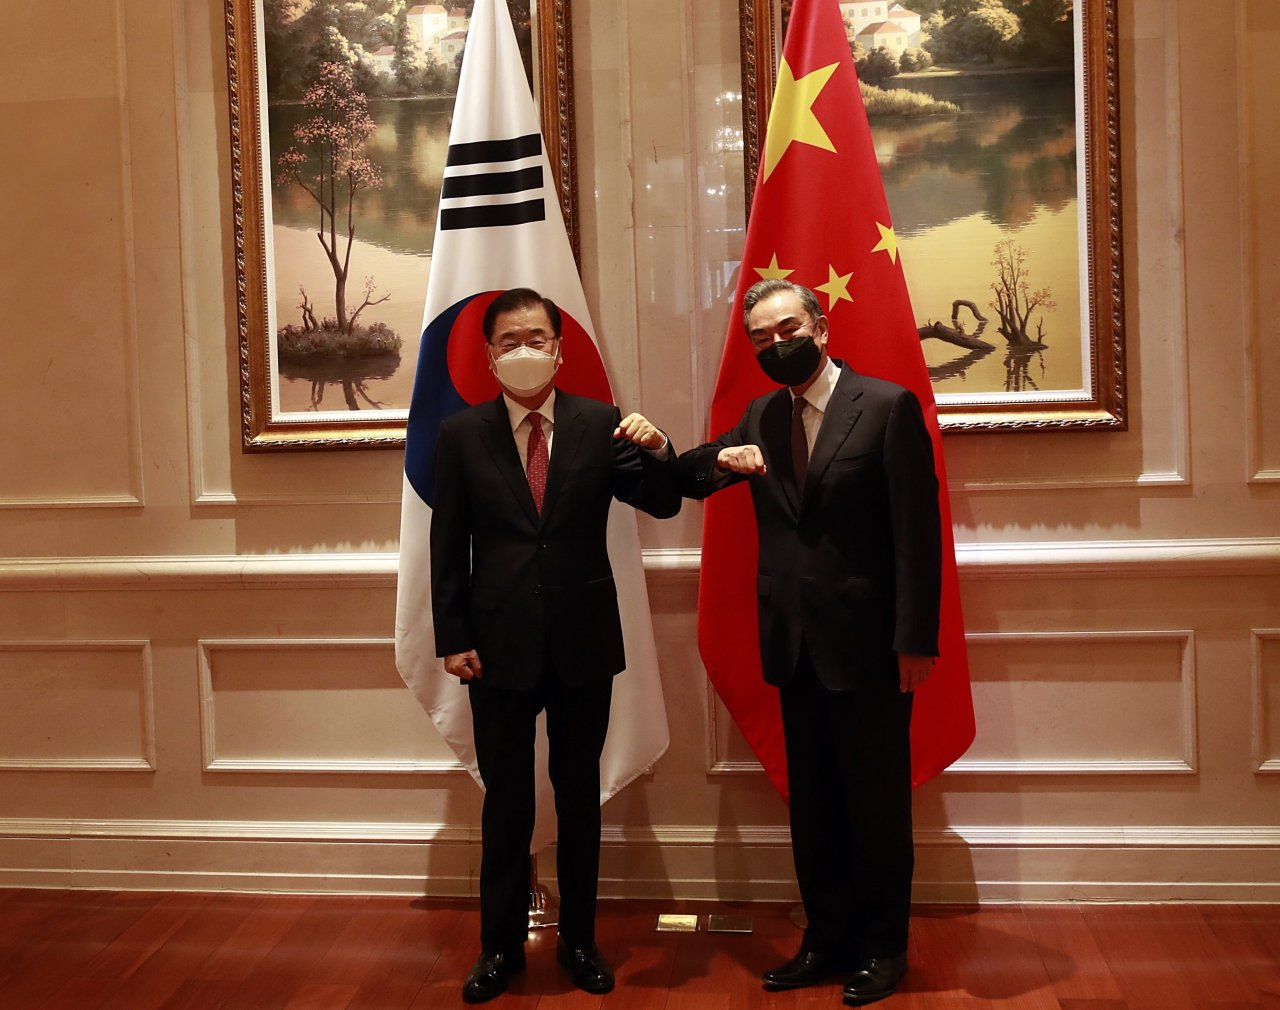 South Korean Foreign Minister Chung Eui-yong (L) and his Chinese counterpart, Wang Yi, bump elbows ahead of their talks in Xiamen, China, on Saturday. (Yonhap)